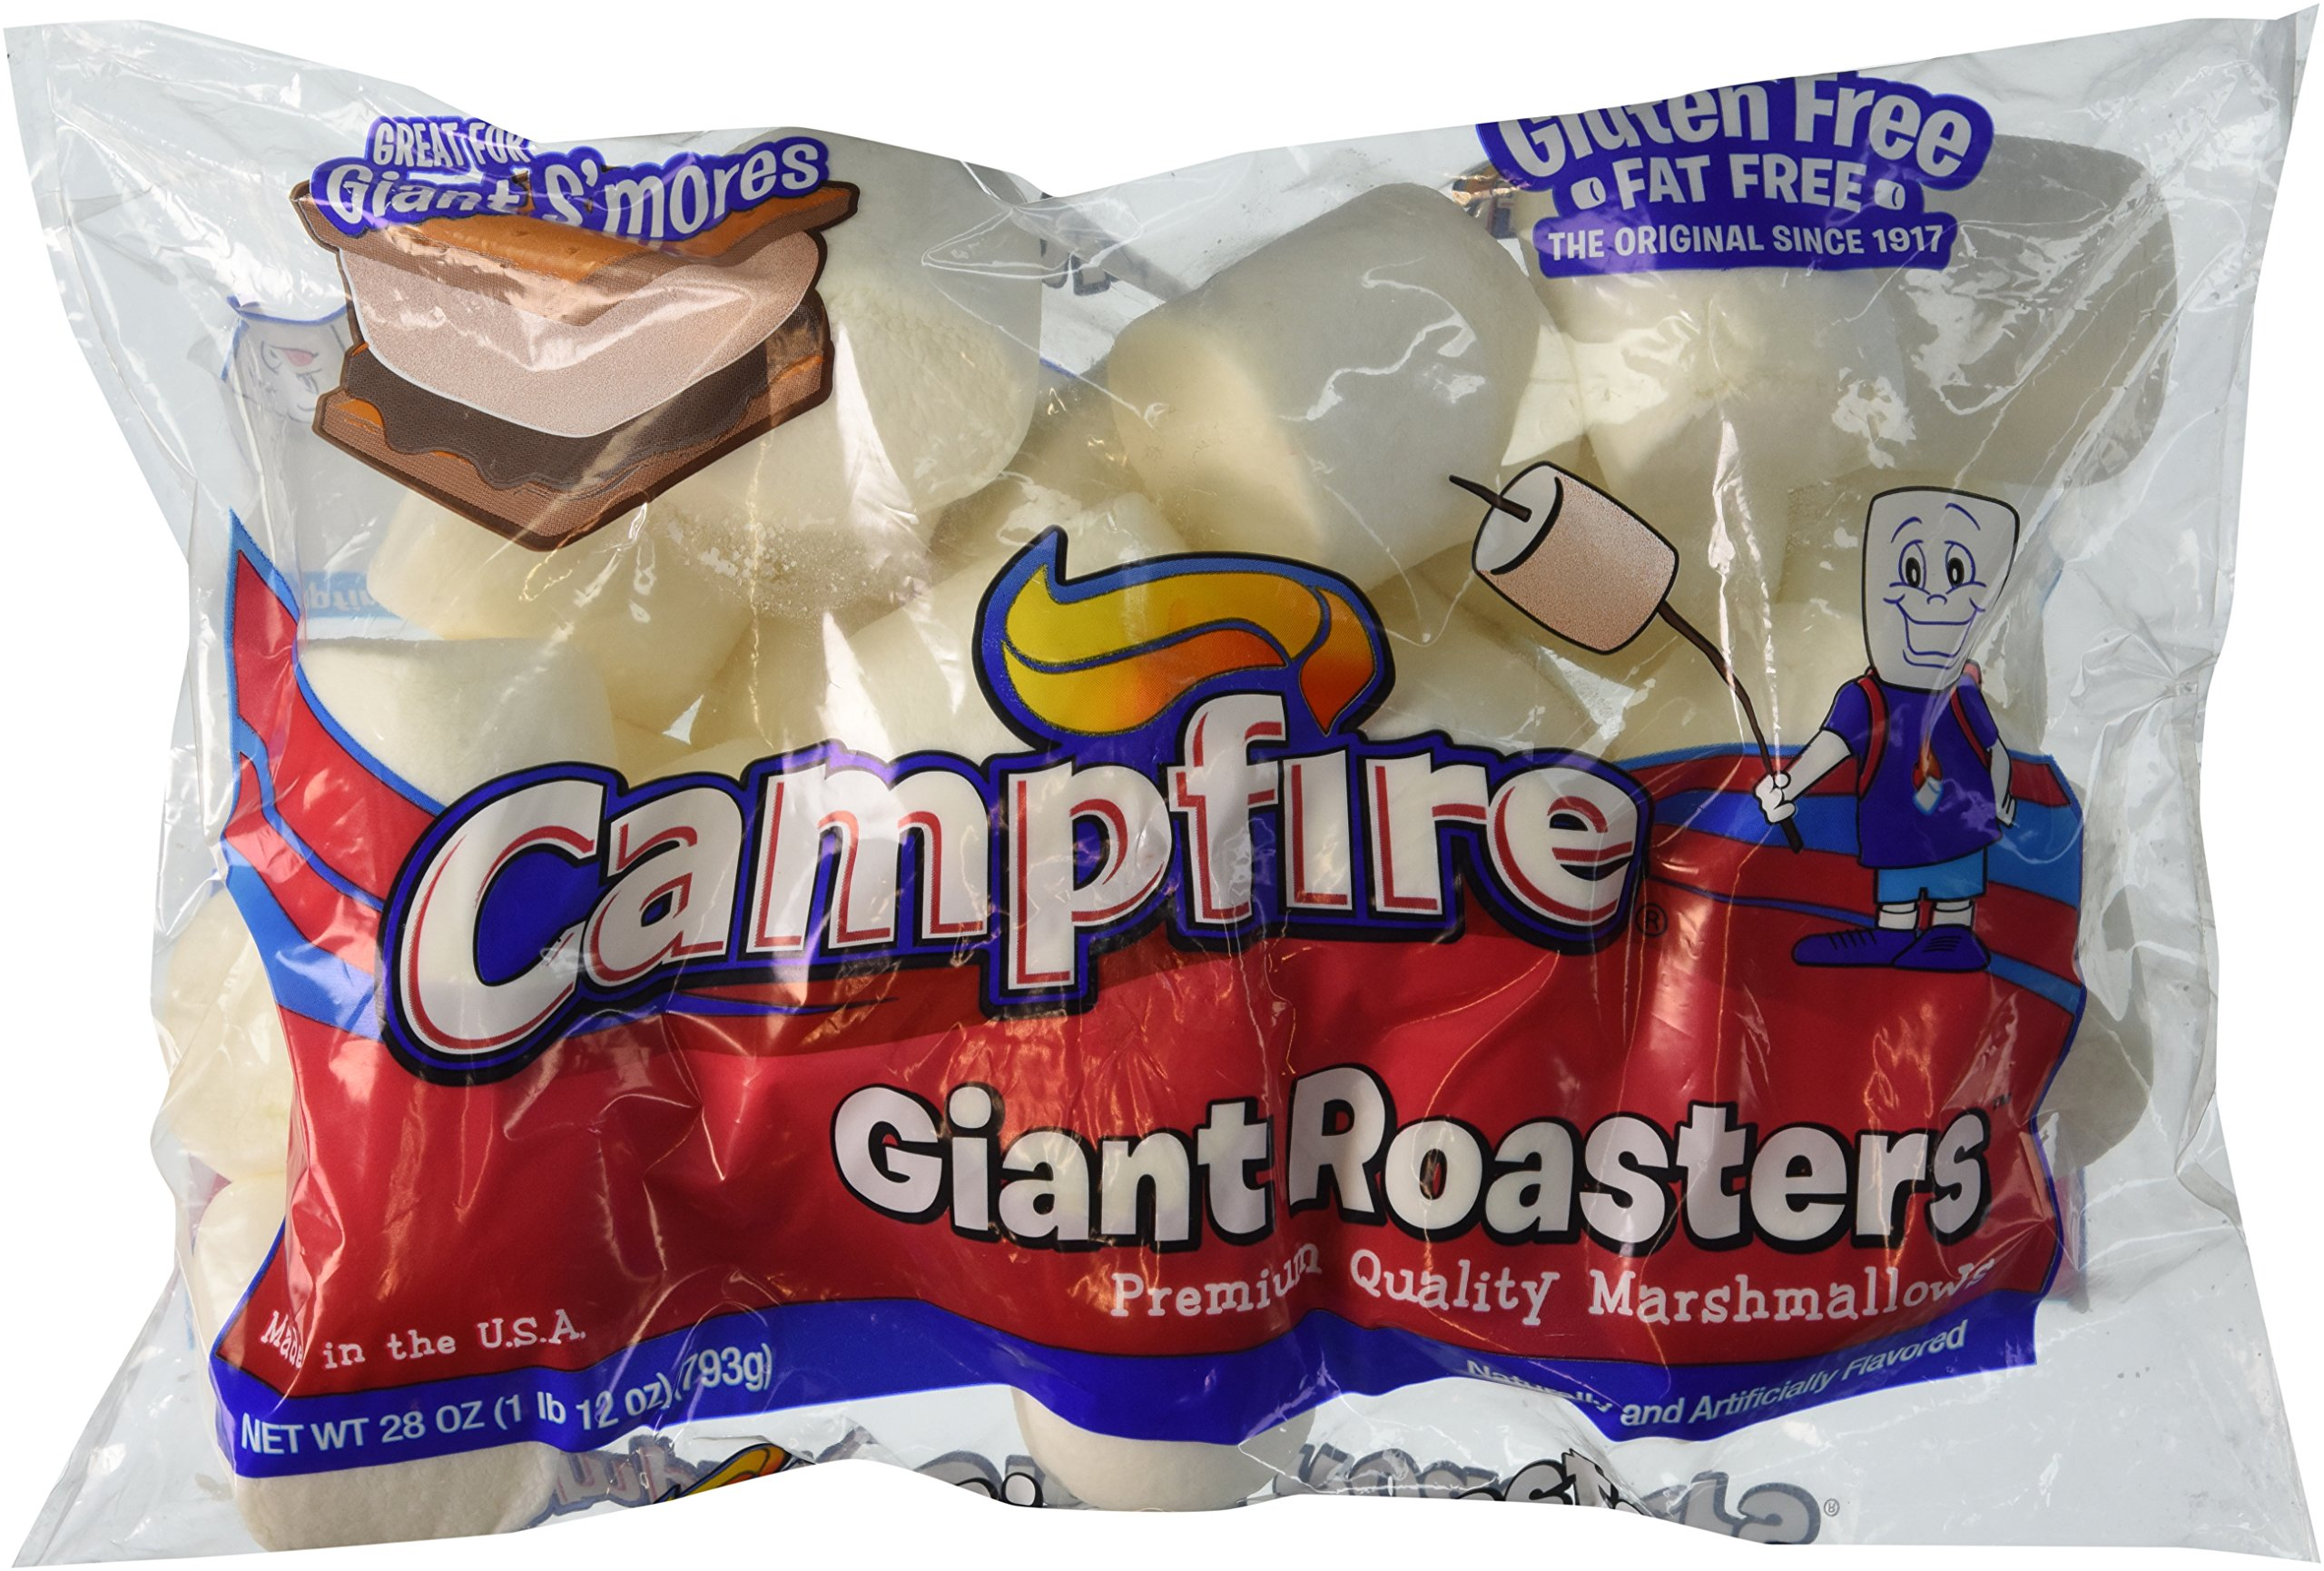 Campfire Giant Roasters Marshmallows Huge 28 Ounce Bag Pack of 3 by Campfire Marshmallows